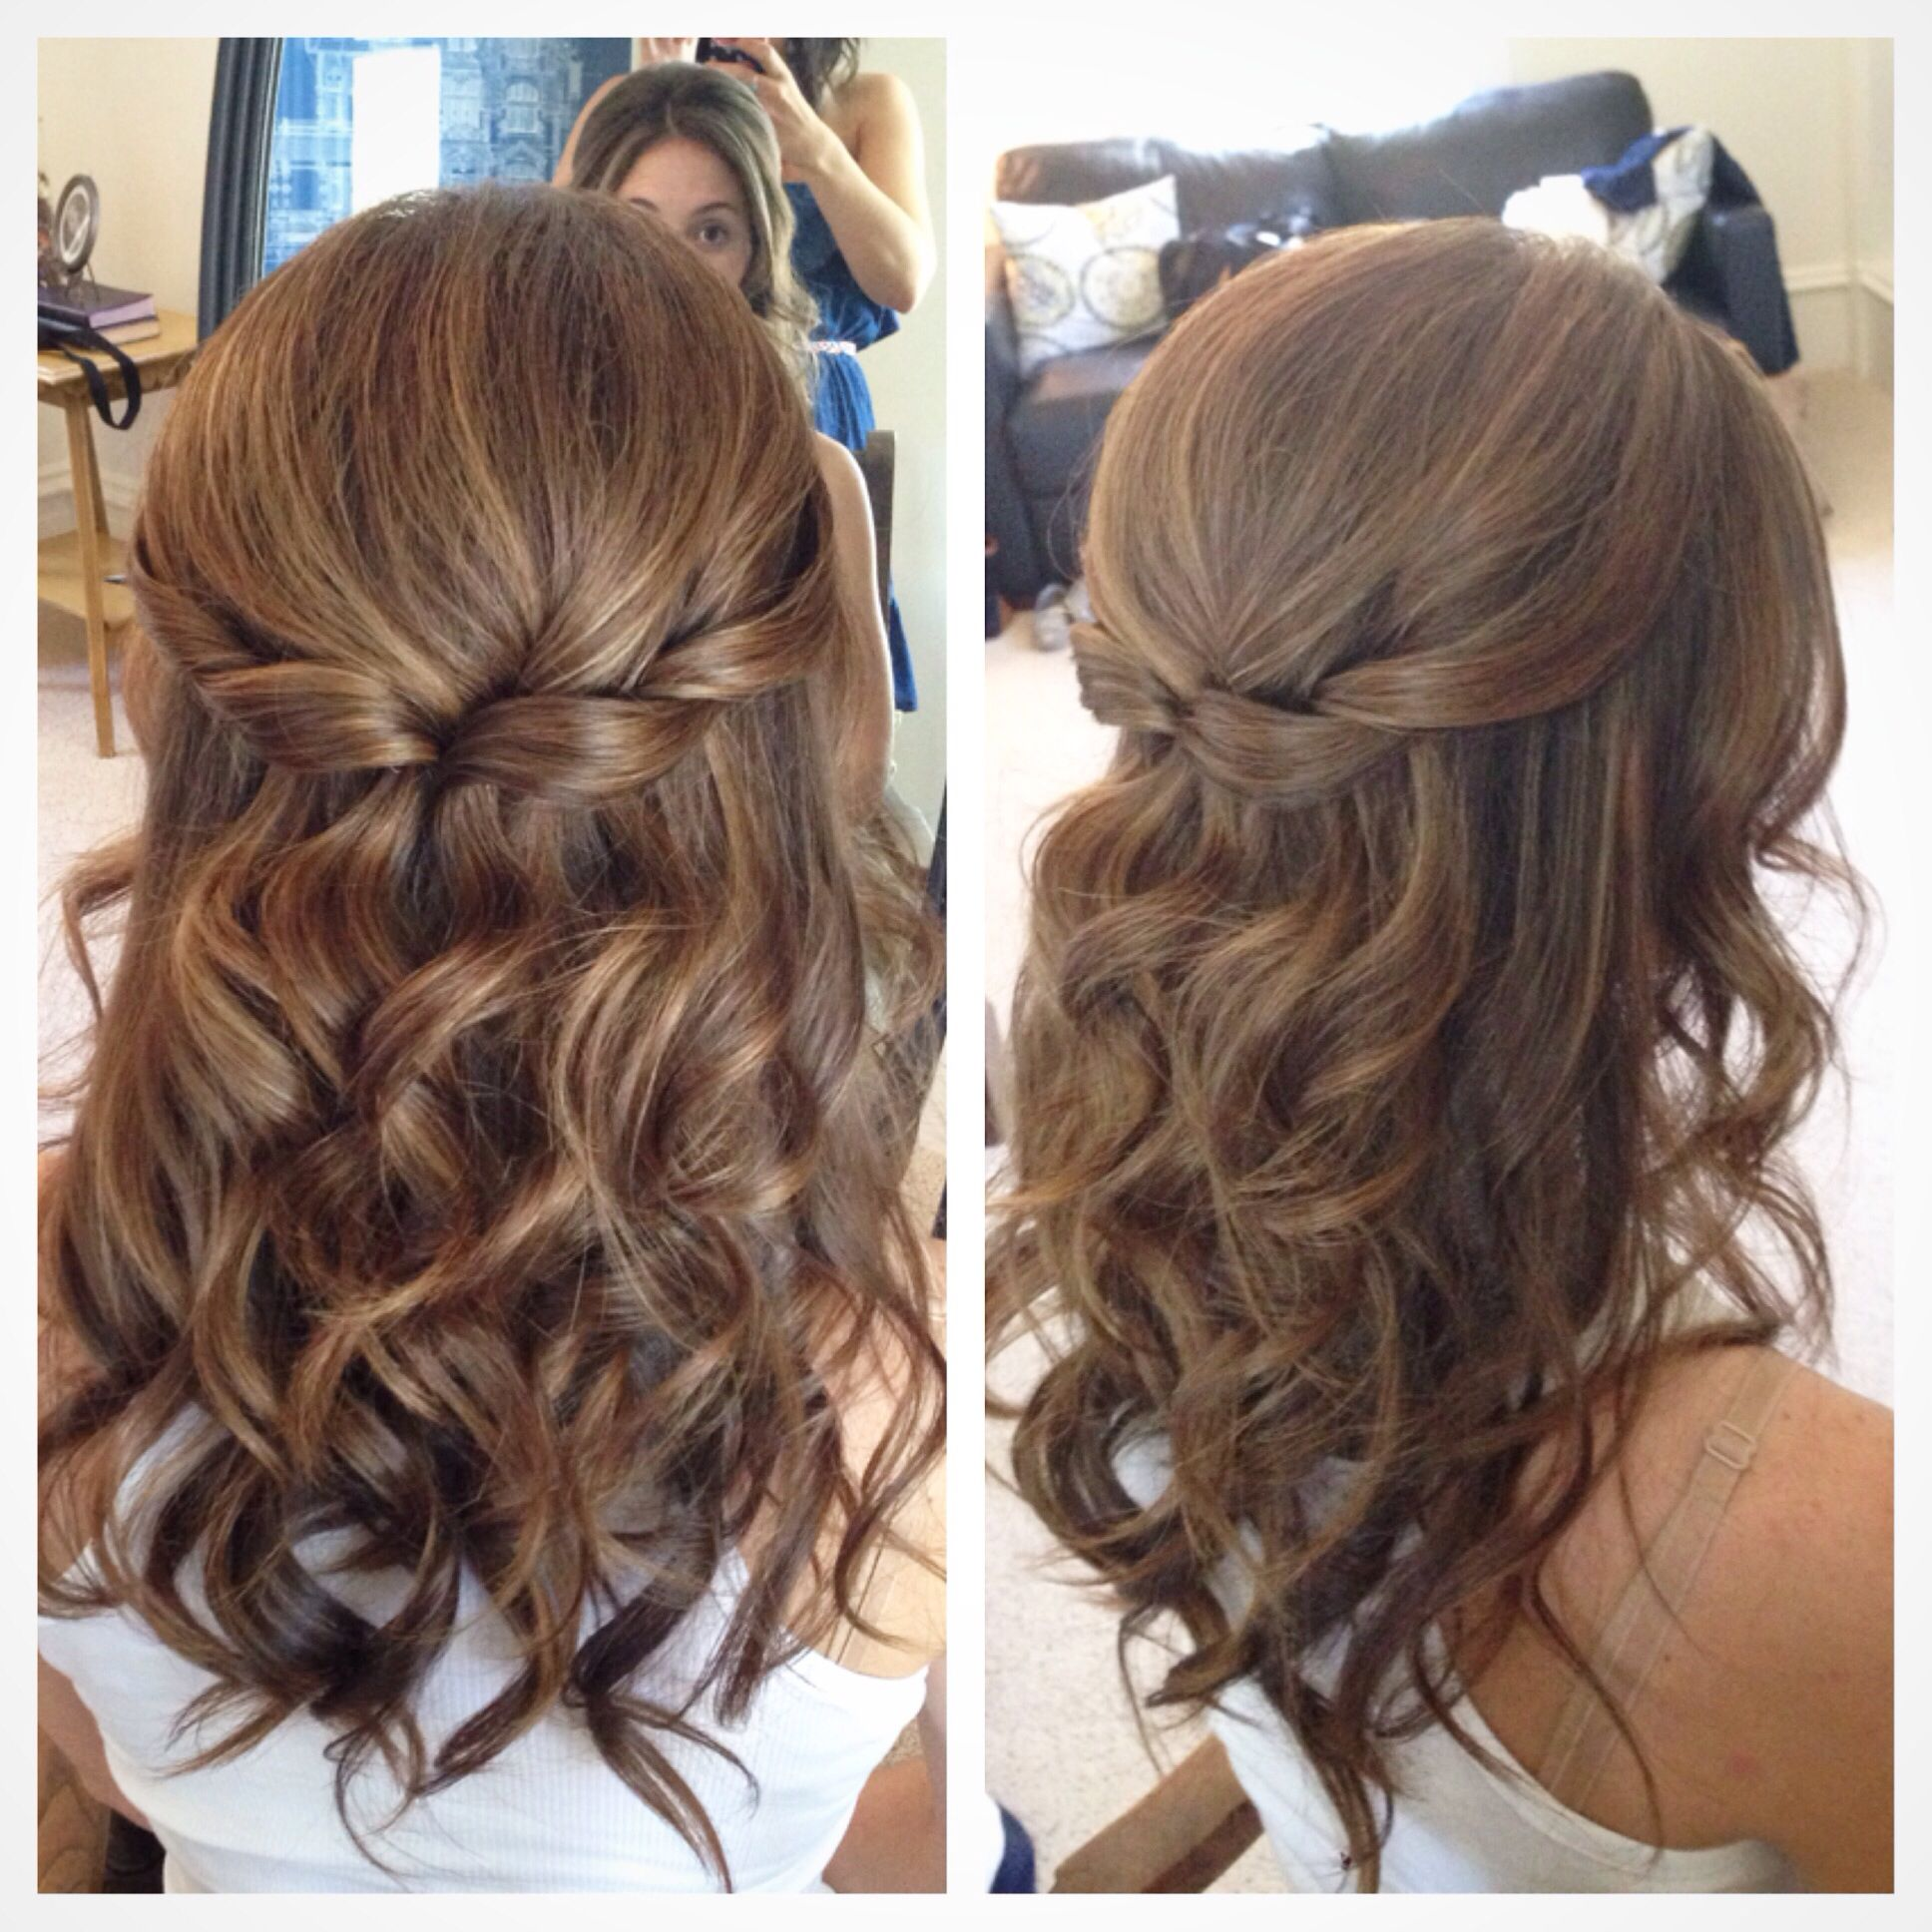 Frisur Standesamt Half Up Half Down Hair Wedding Hair Pretty Hair Elegante